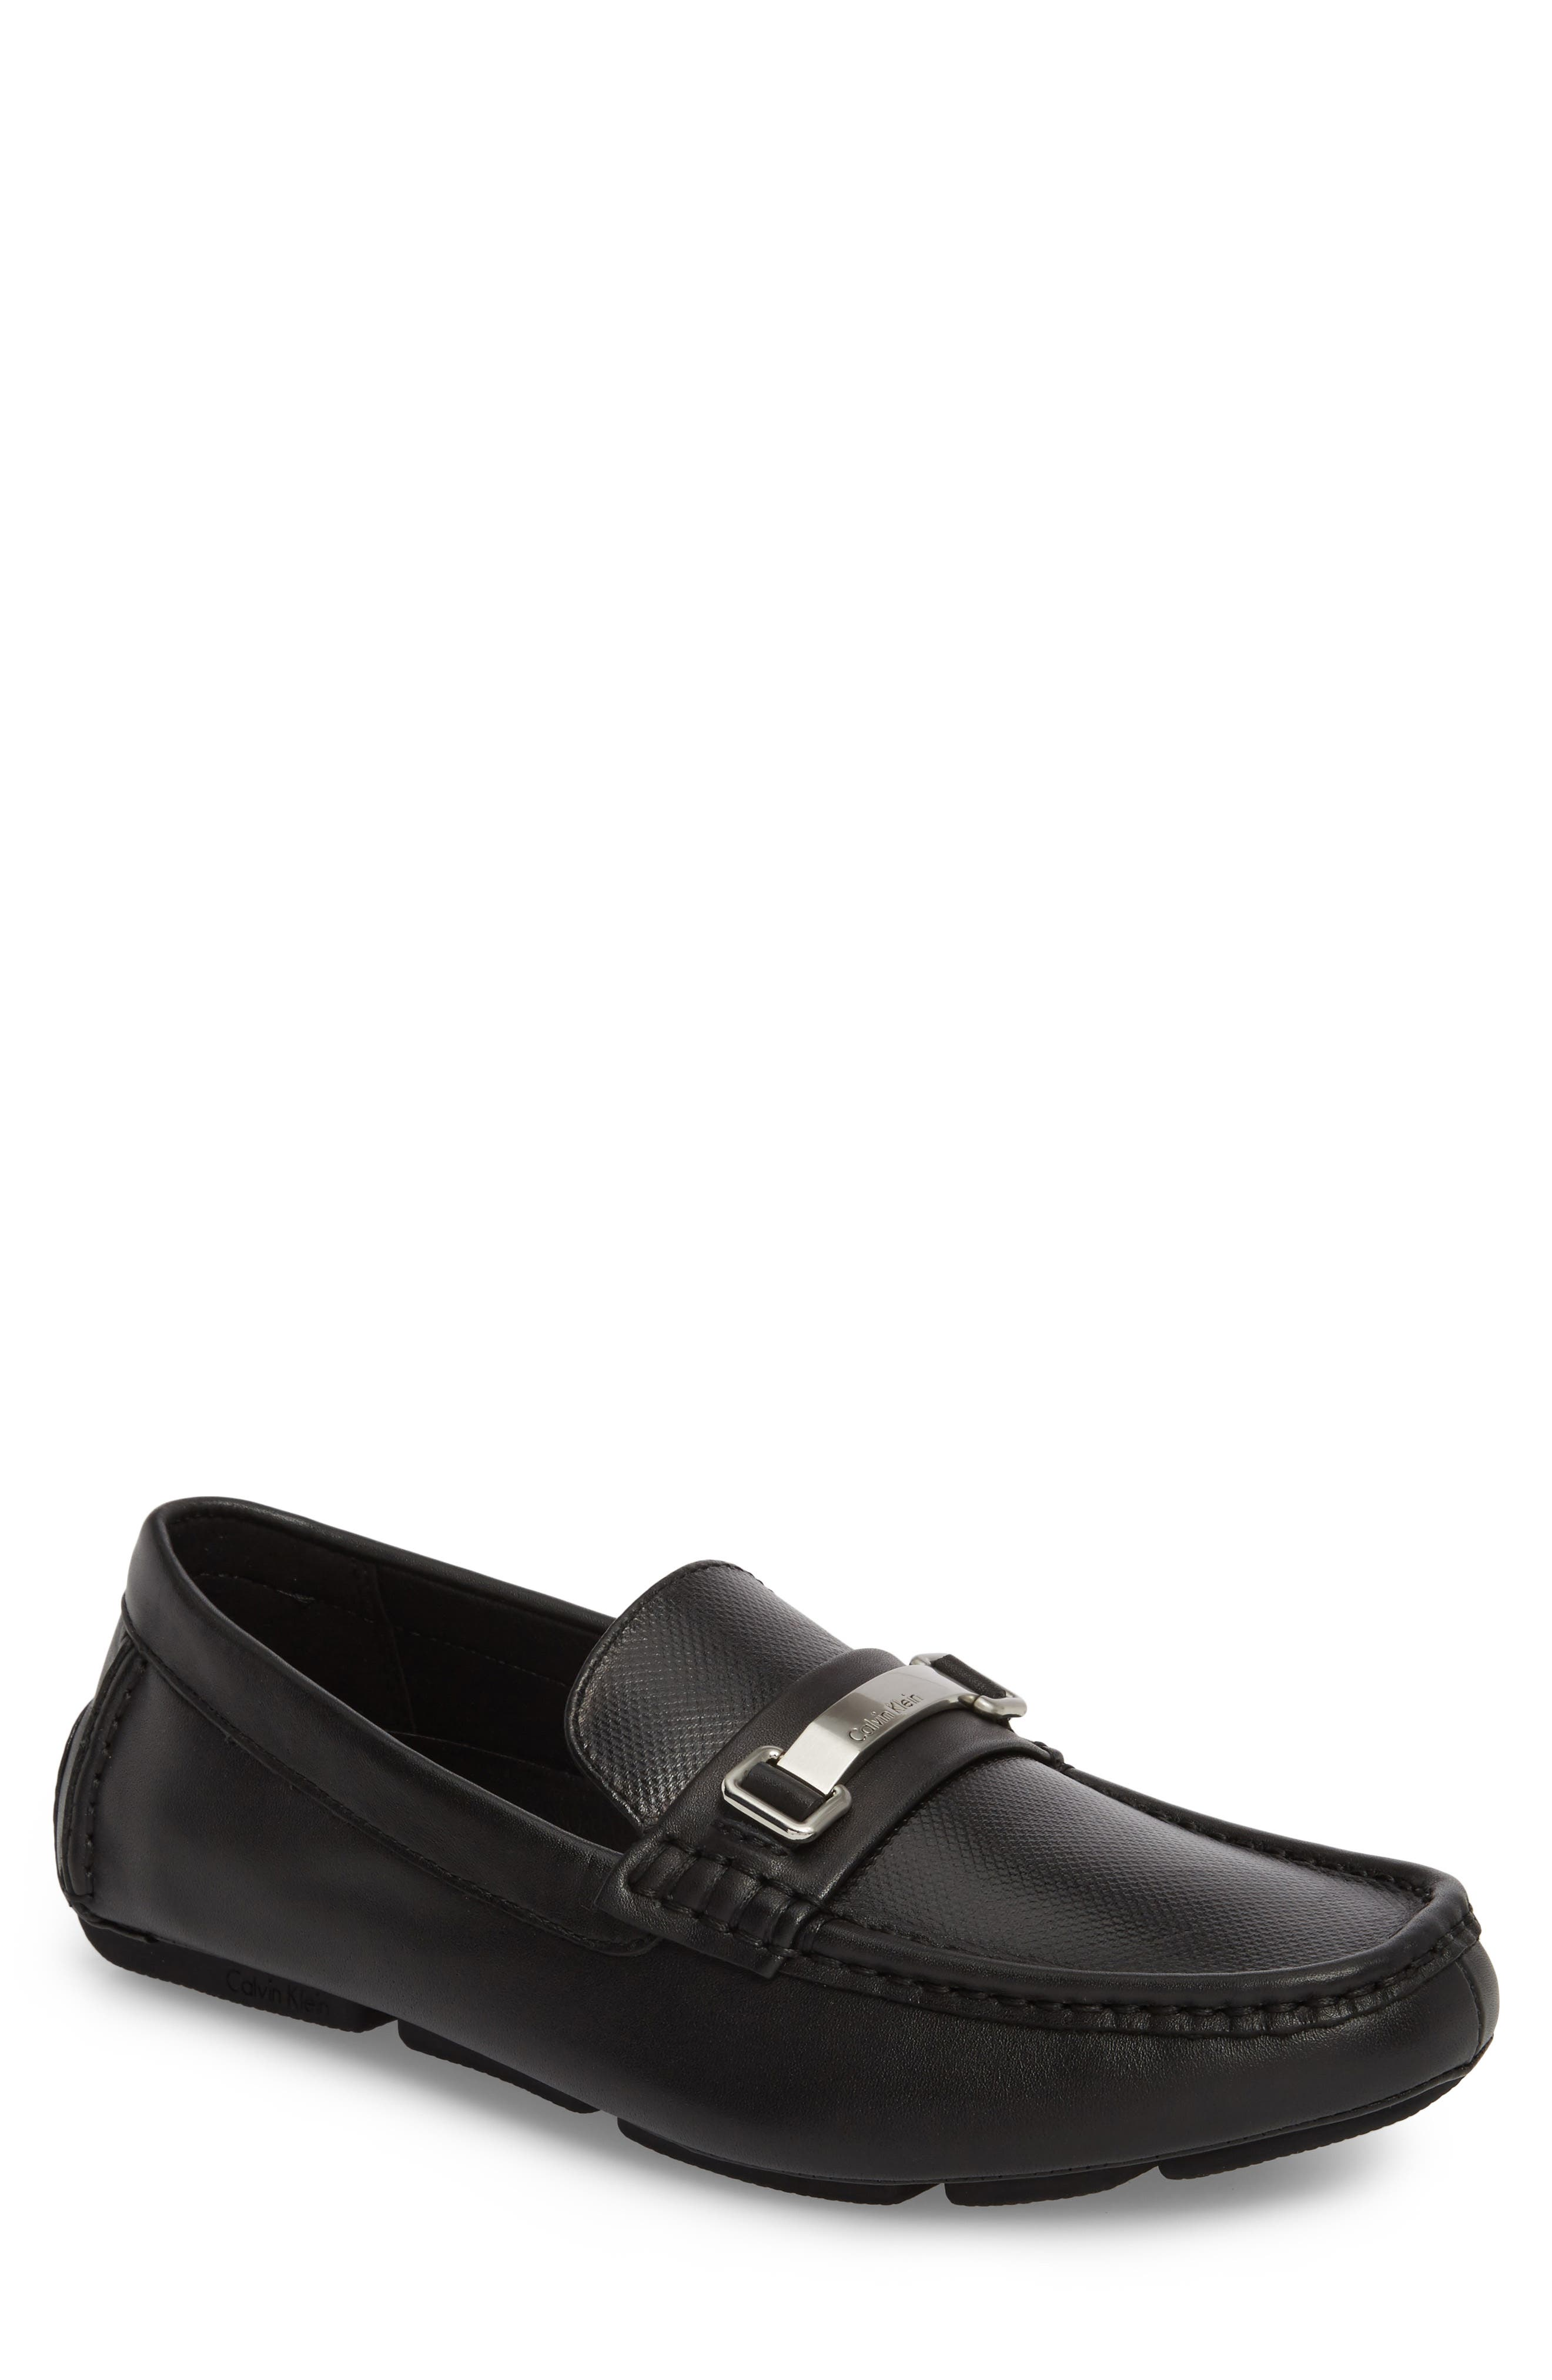 CALVIN KLEIN Maddix Textured Driving Moccasin, Main, color, BLACK LEATHER